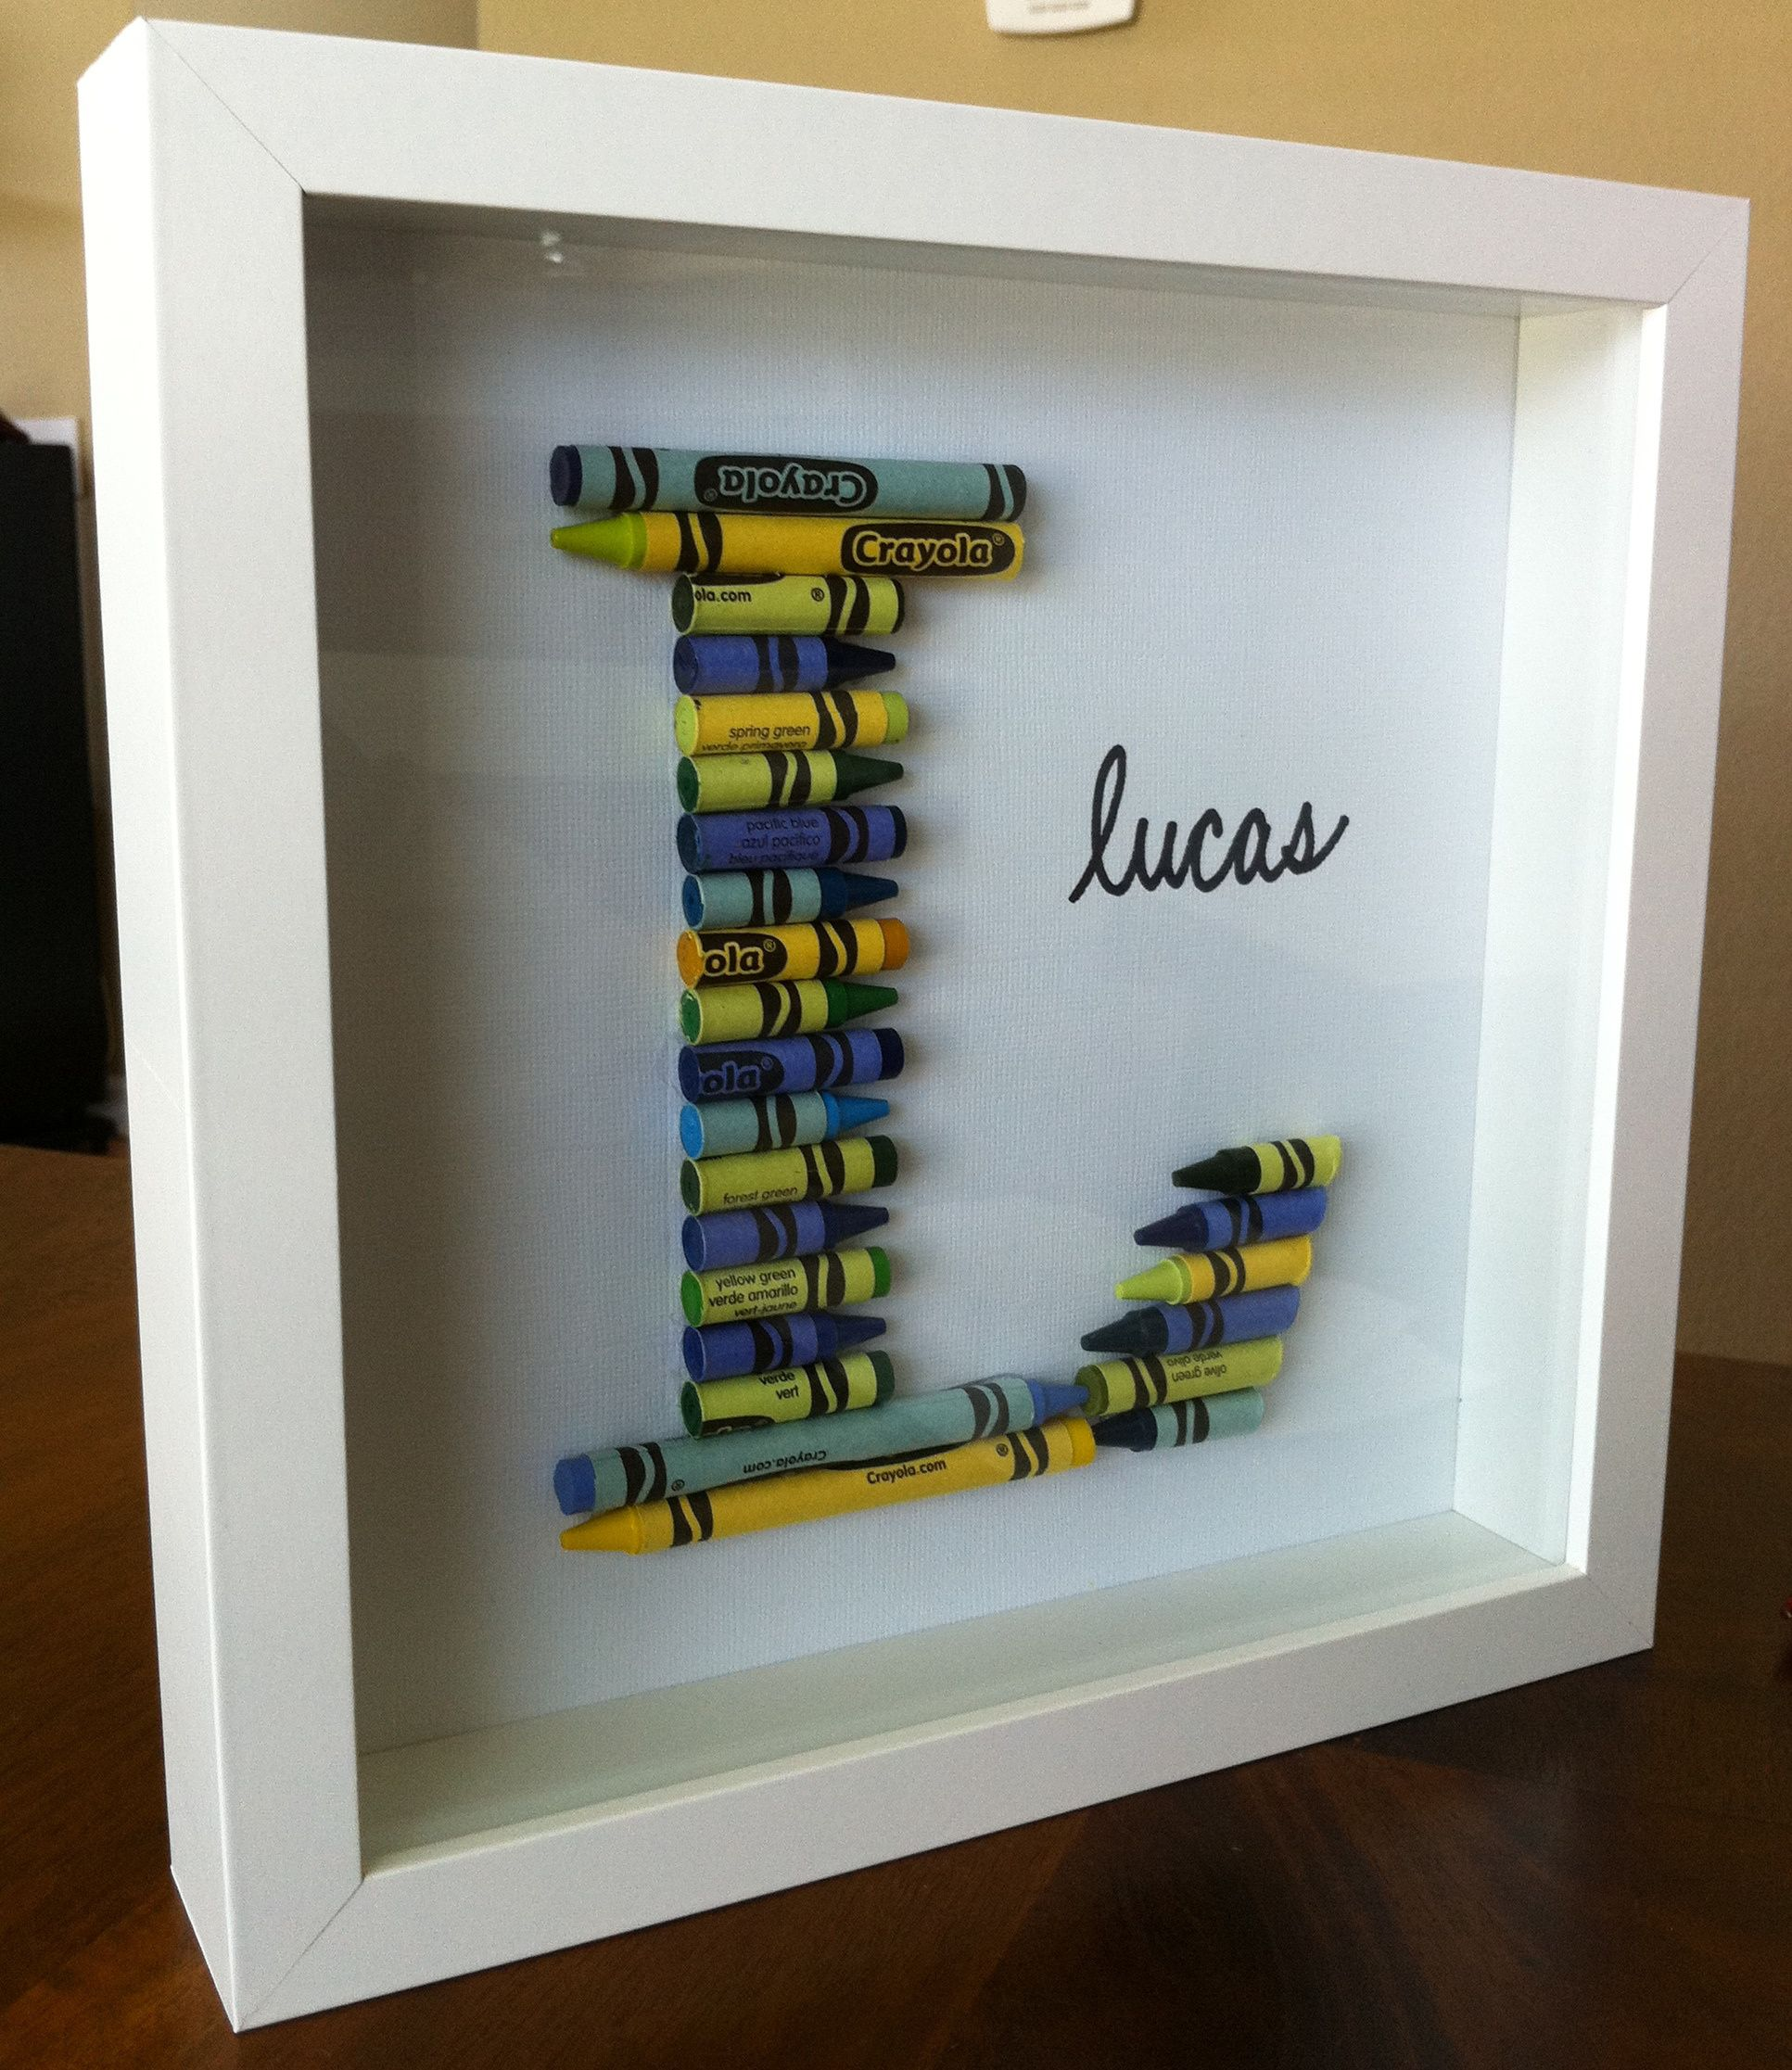 Crayon name/letter in a memory box frame   Gift ideas   Pinterest ...